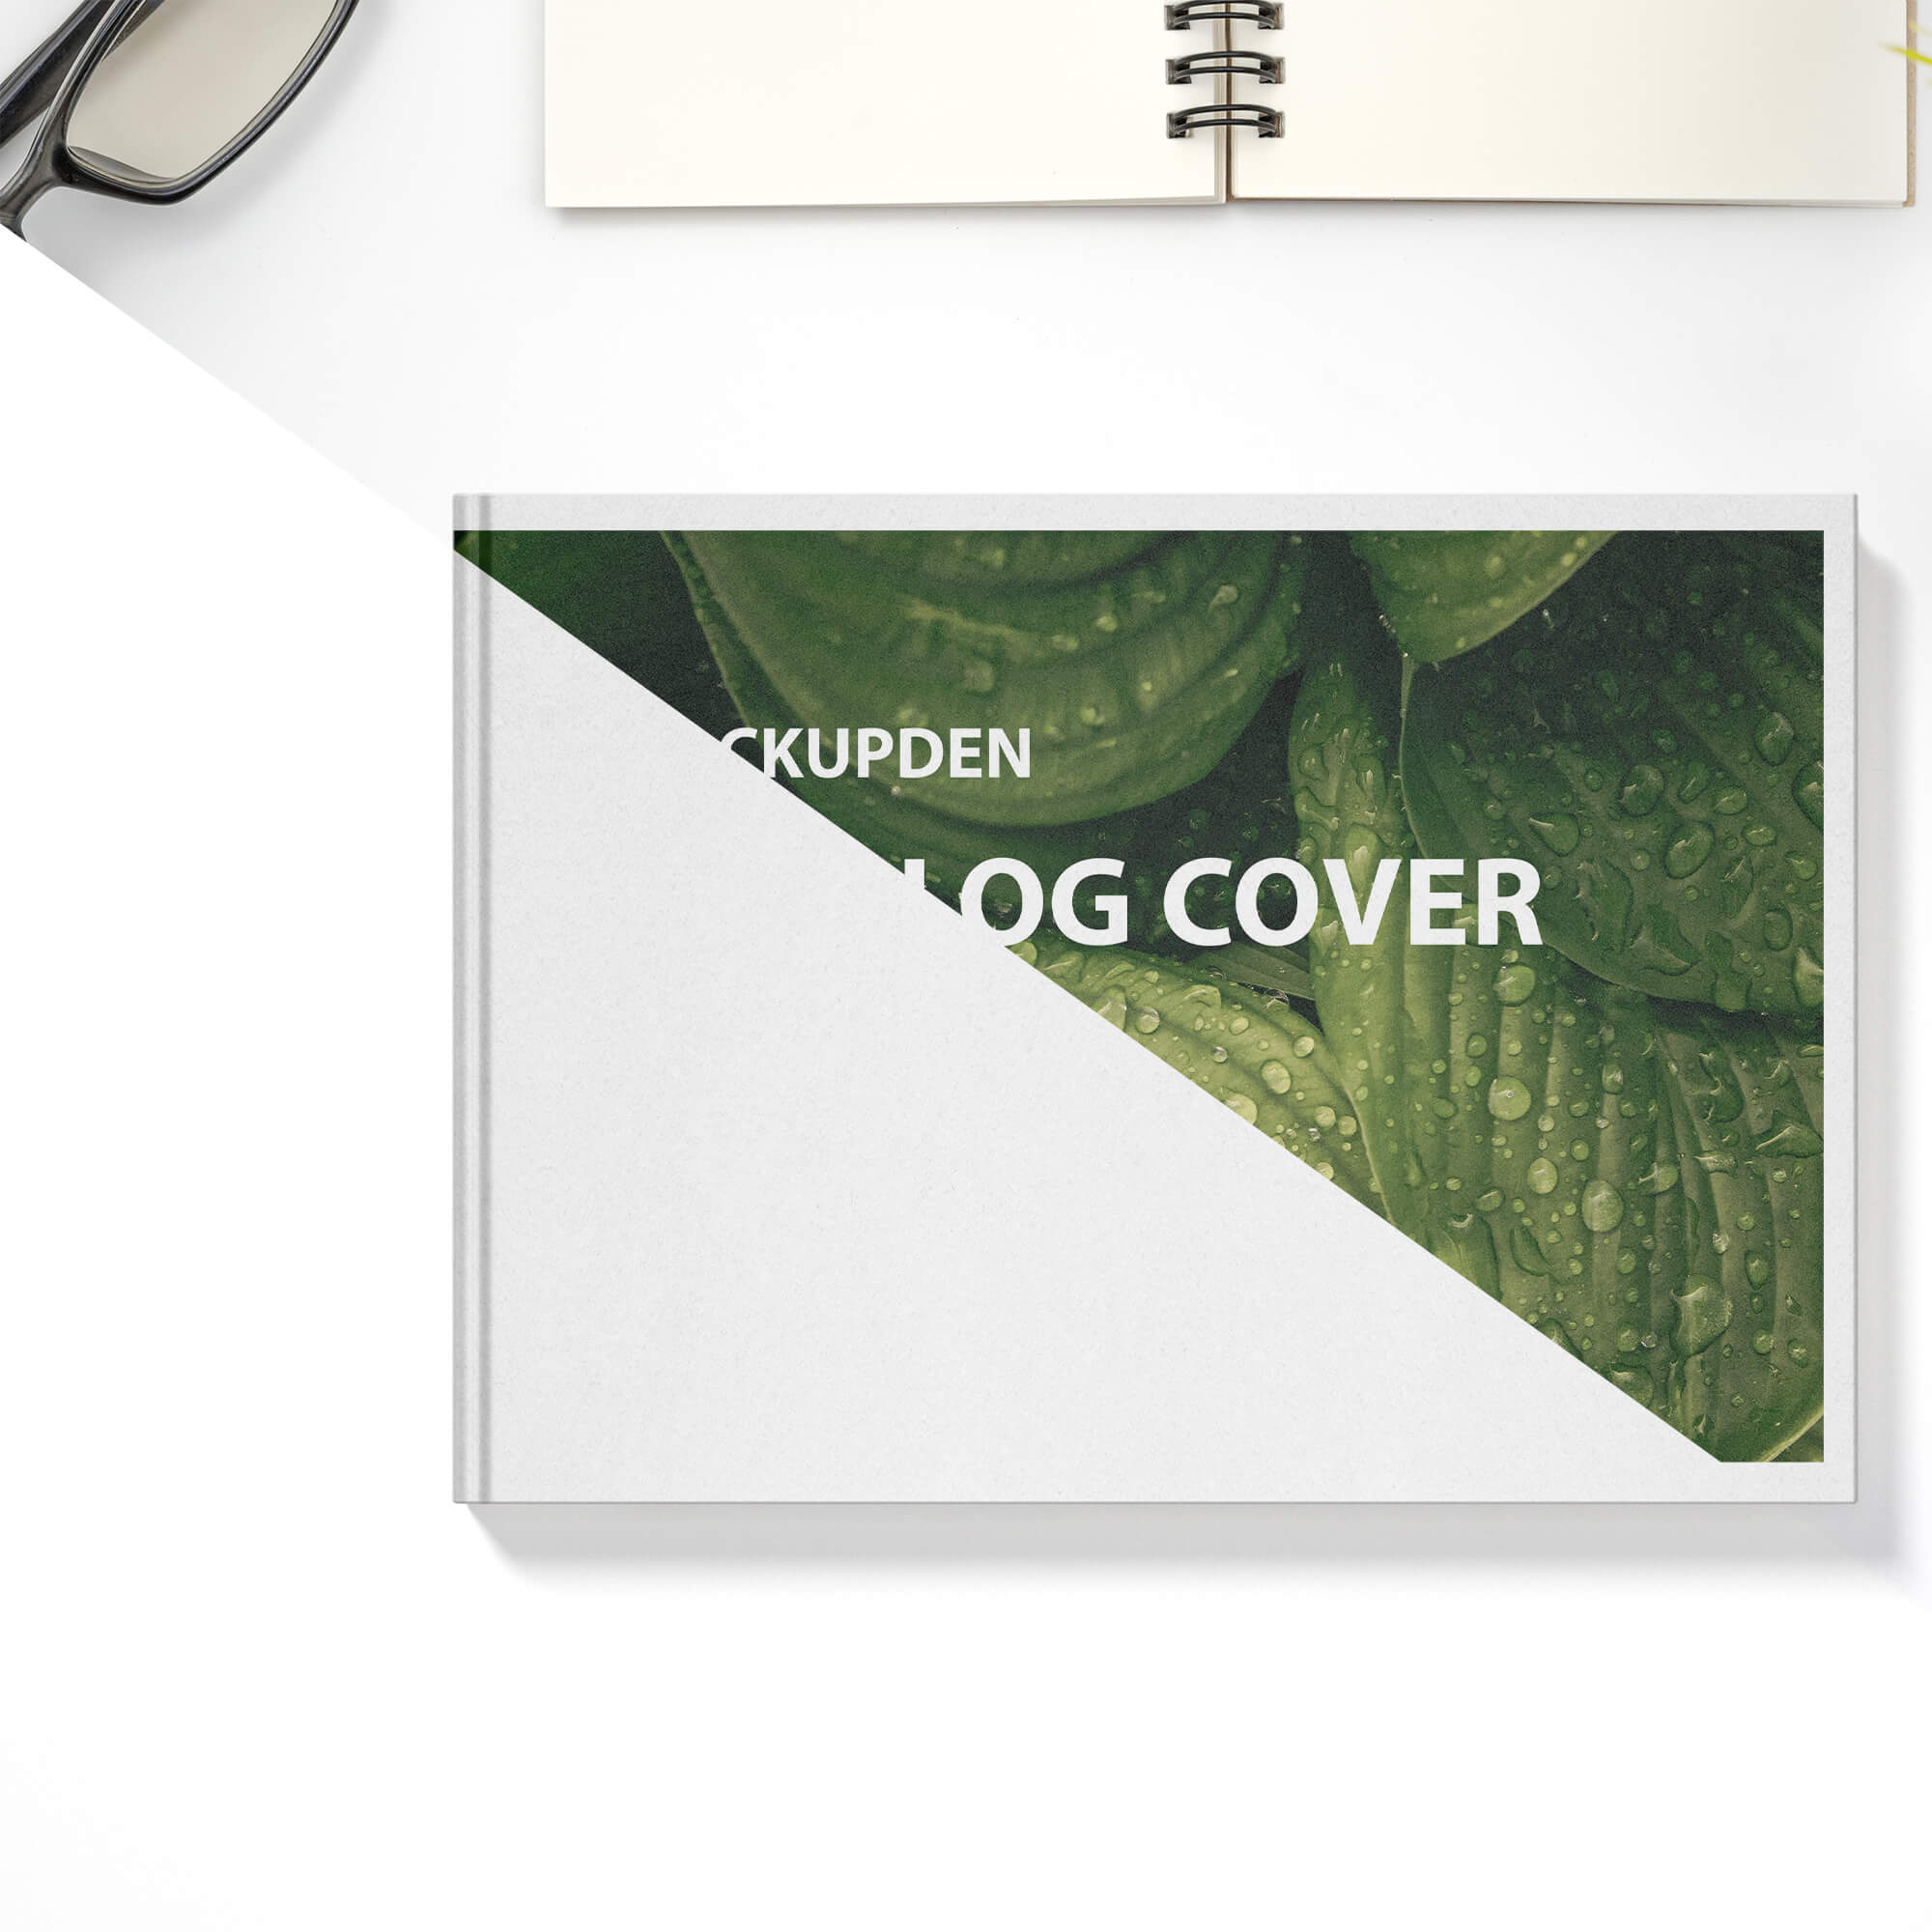 Editable Free Catalog Cover Mockup PSD Template